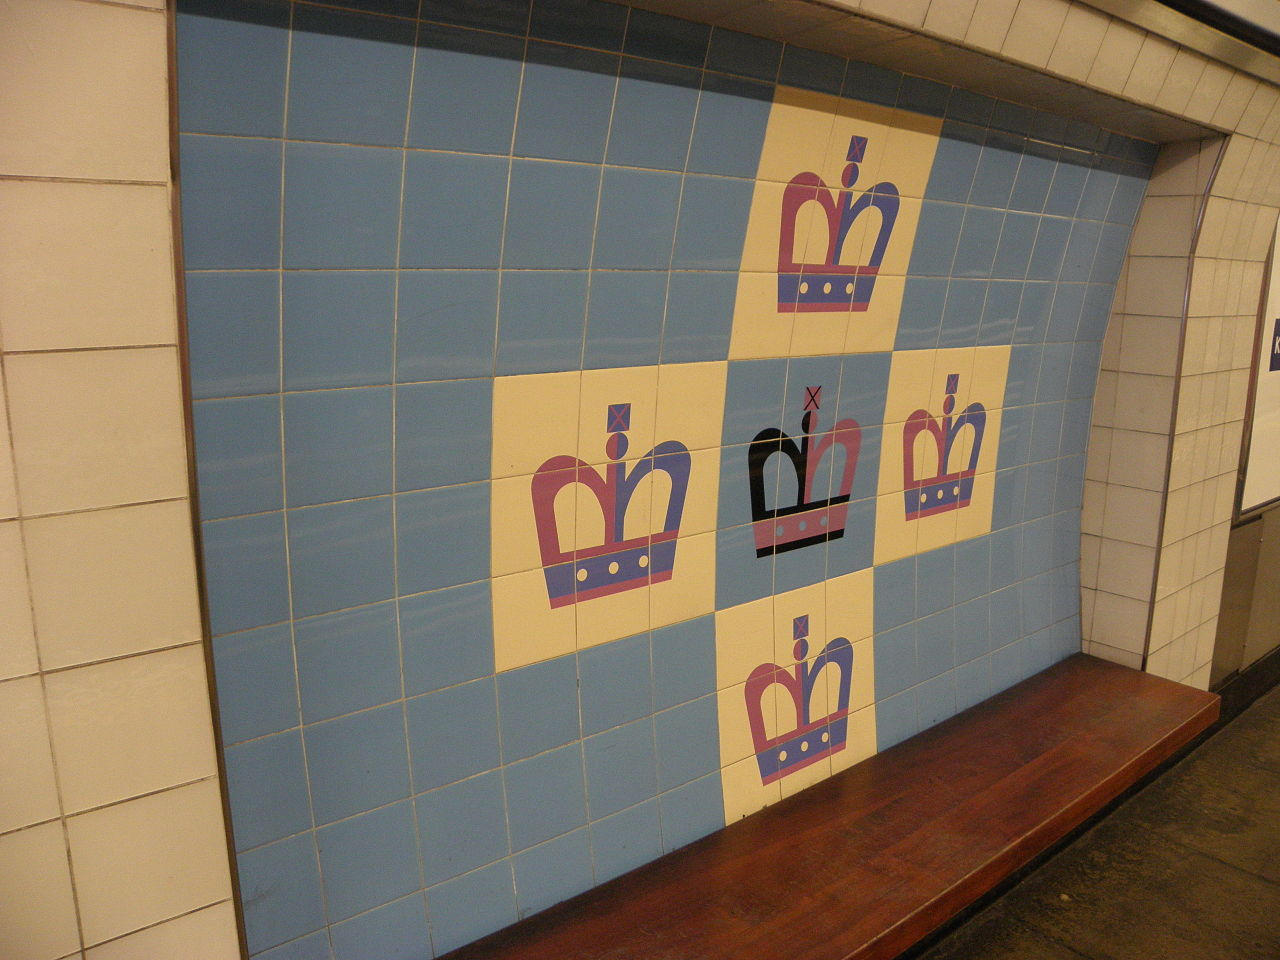 A platform on the London Underground.